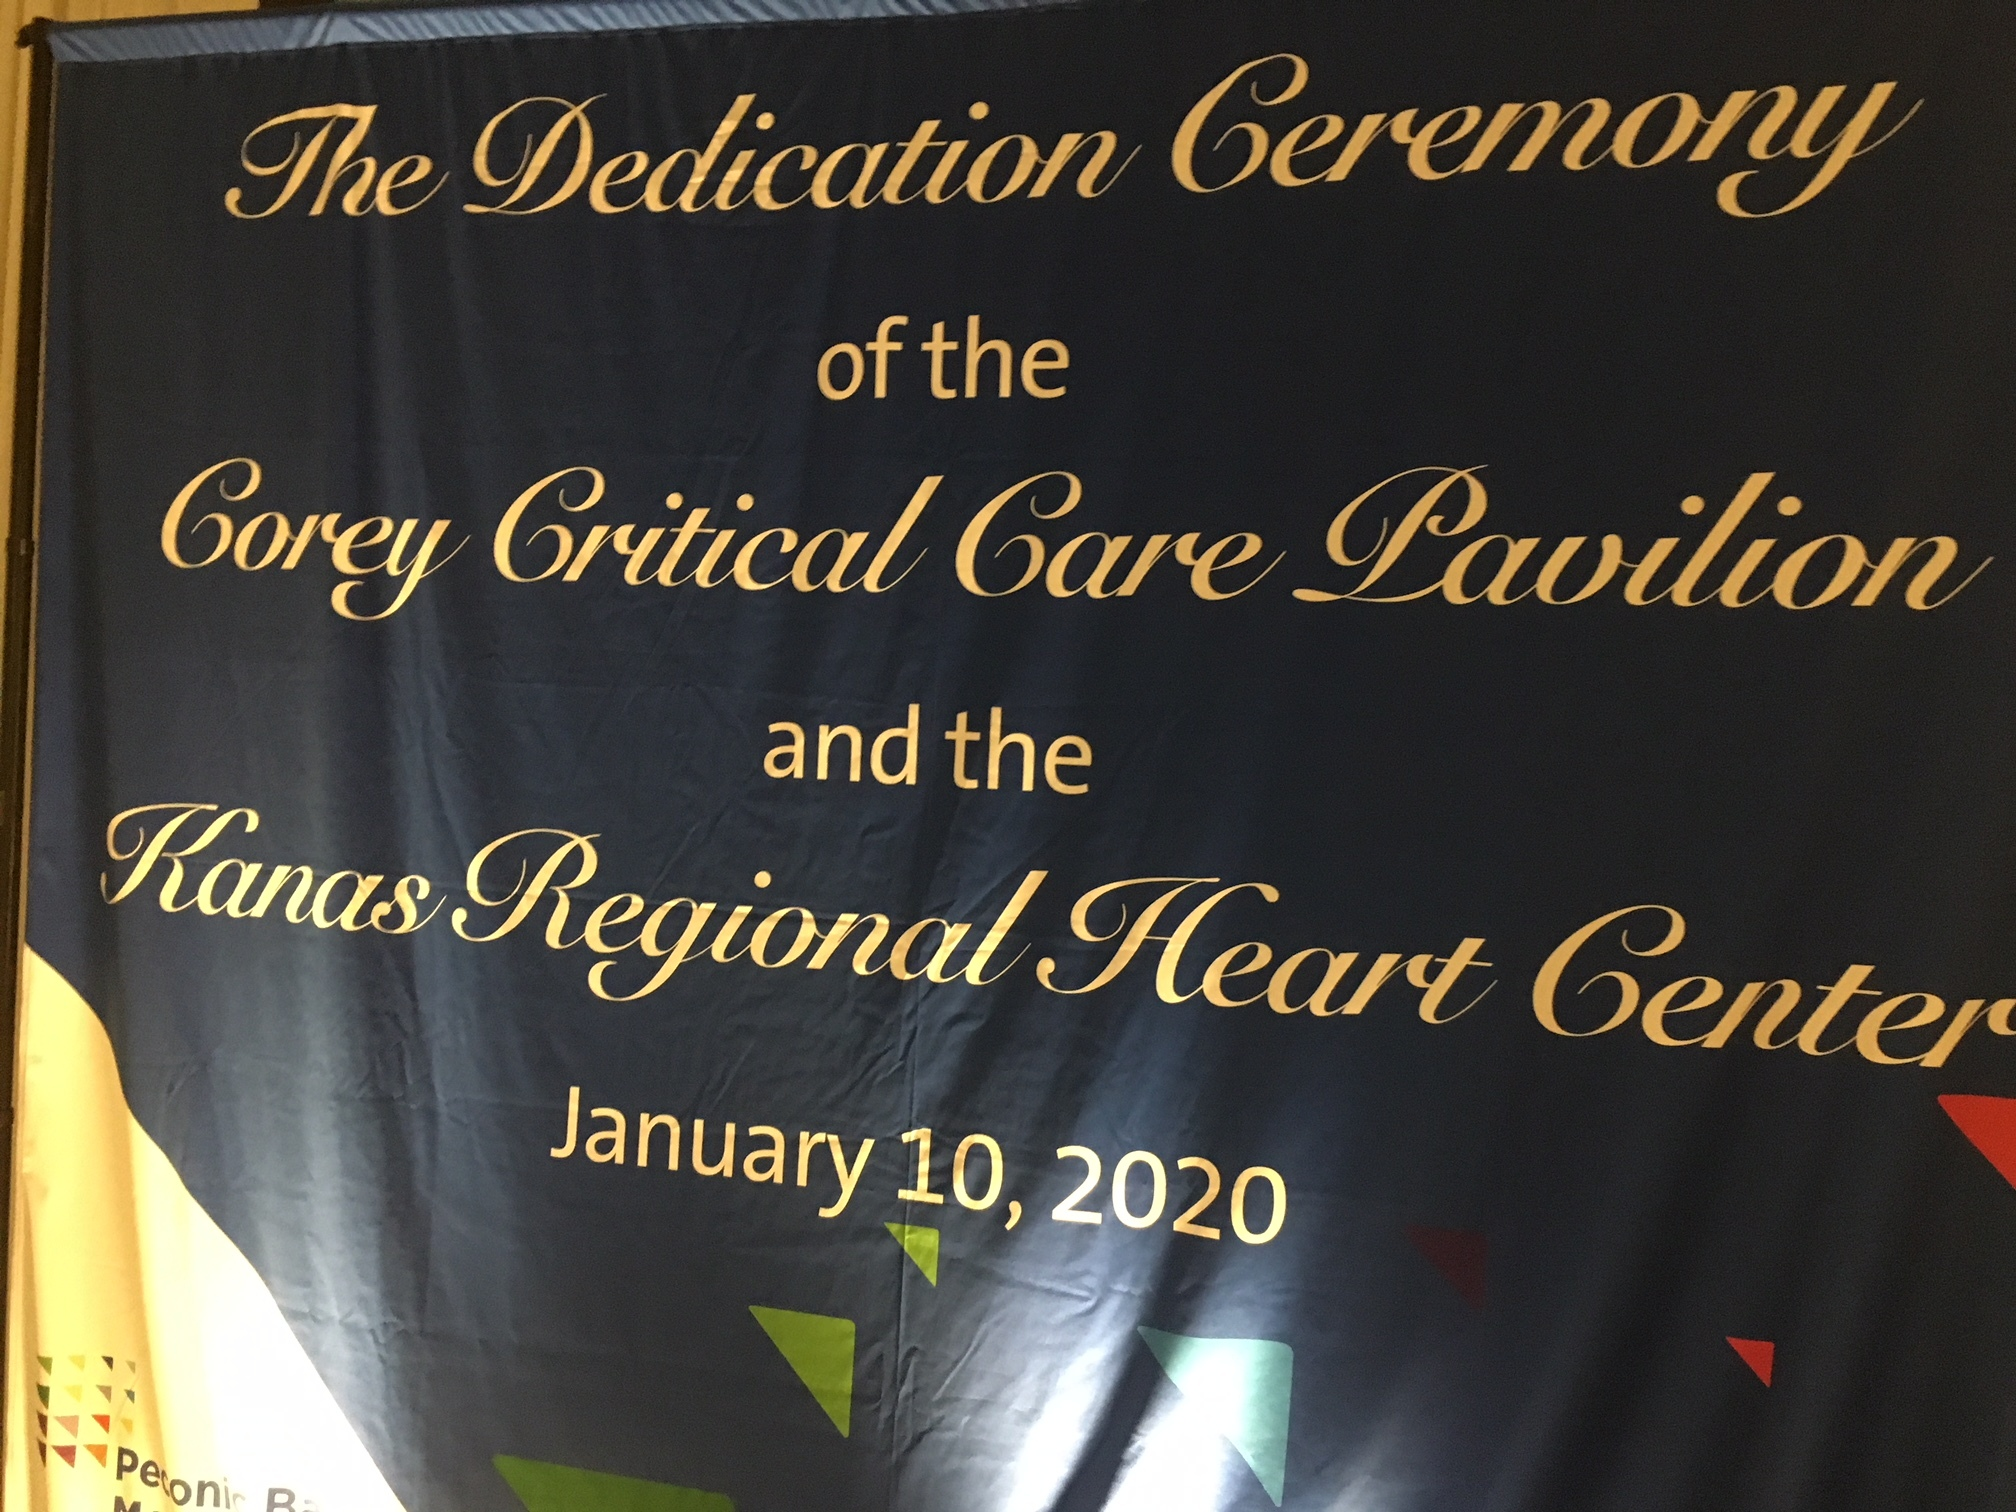 A Ceremony held at Peconic Bay Medical Center Friday celebrated the opening of a new critical care pavillion and heart center. KITTY MERRILL